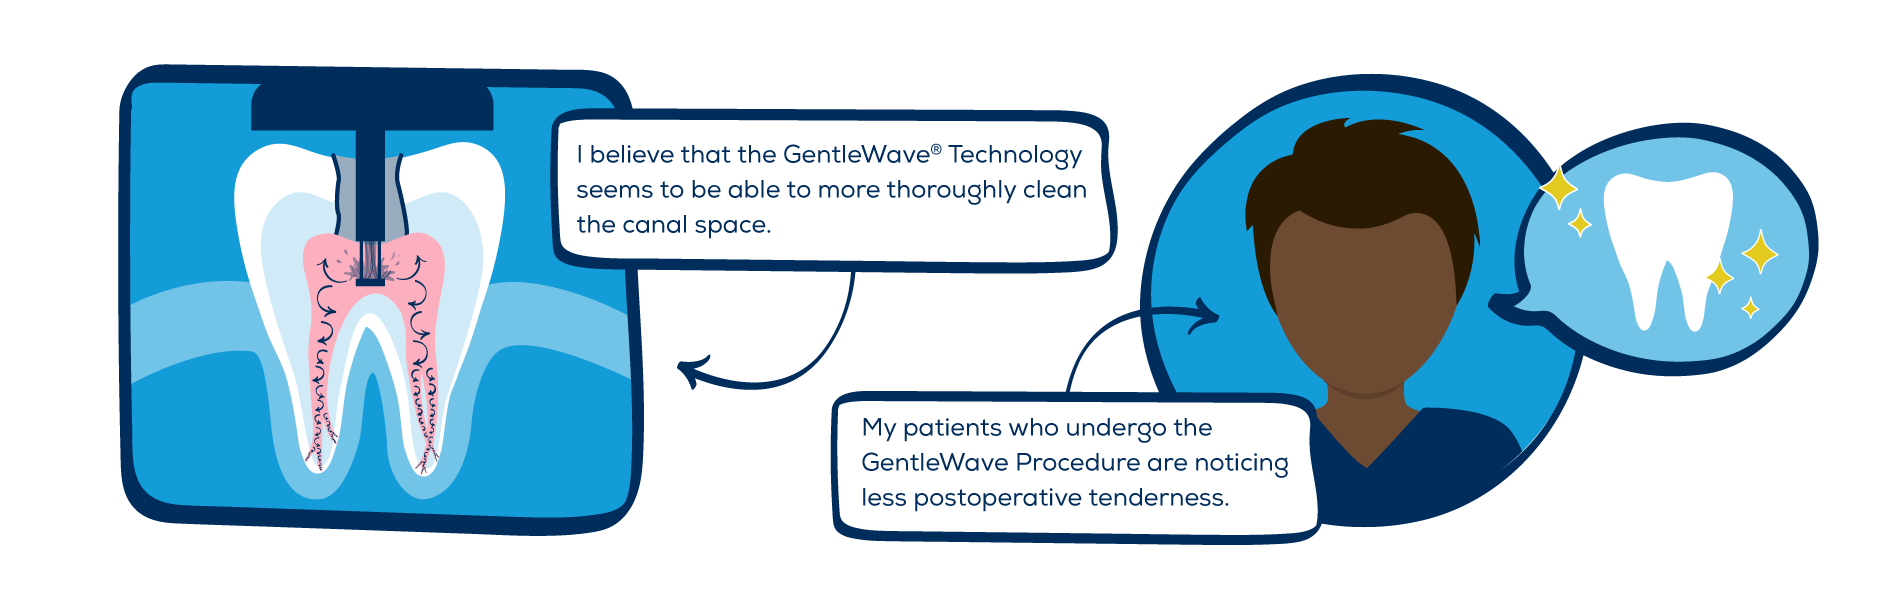 Advantages of the GentleWave Procedure